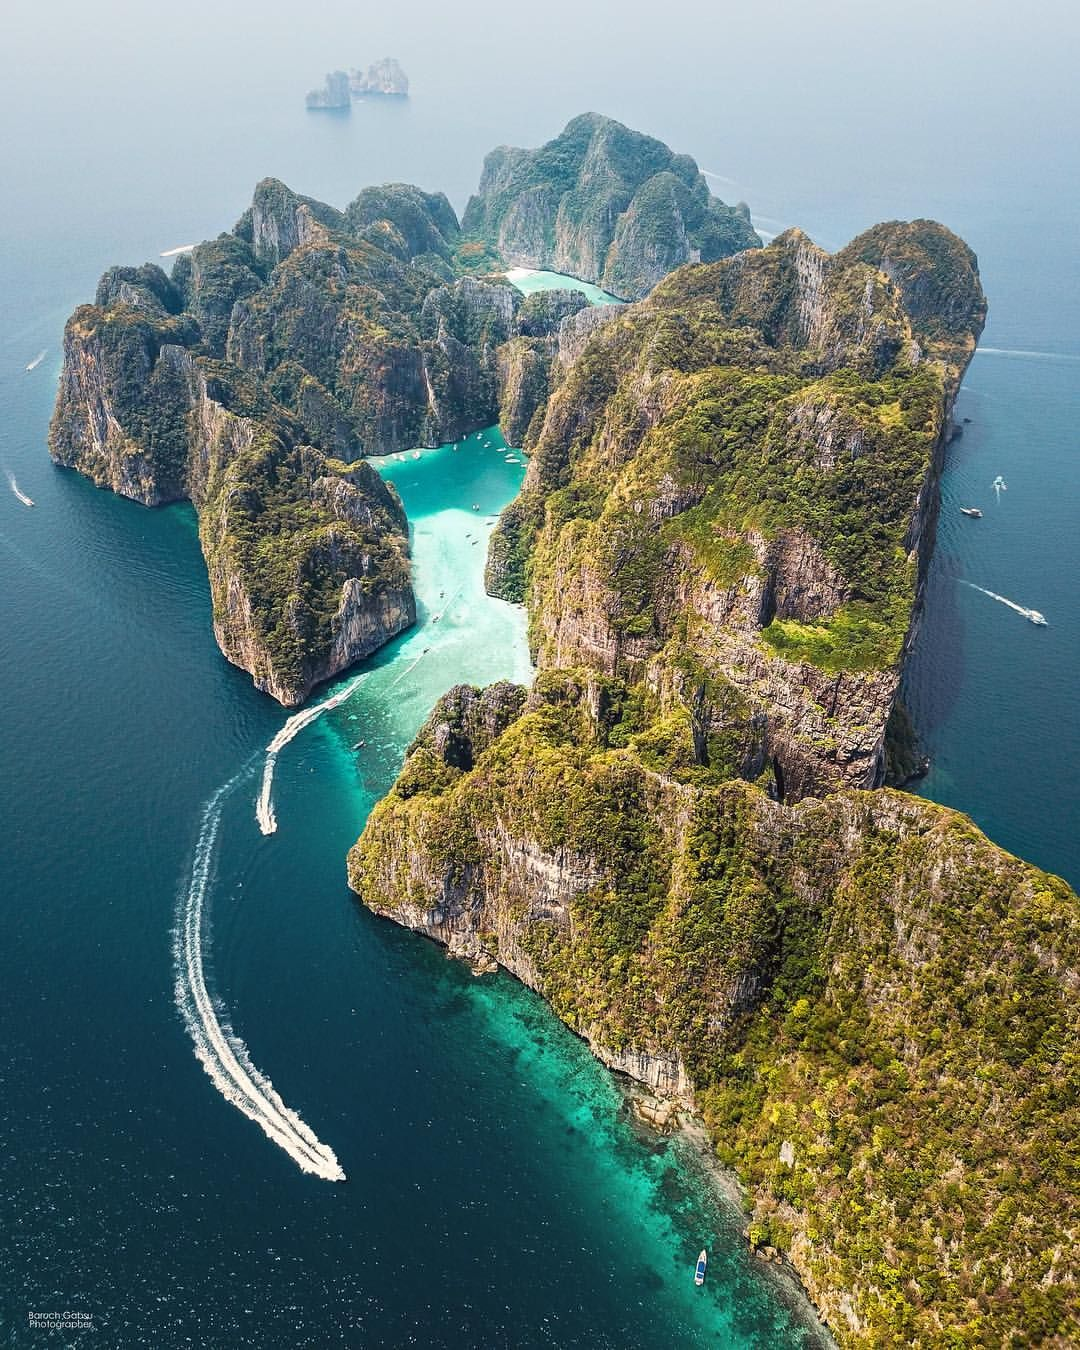 Most Amazing: One Of The Most Amazing Islands I Visited In Thailand